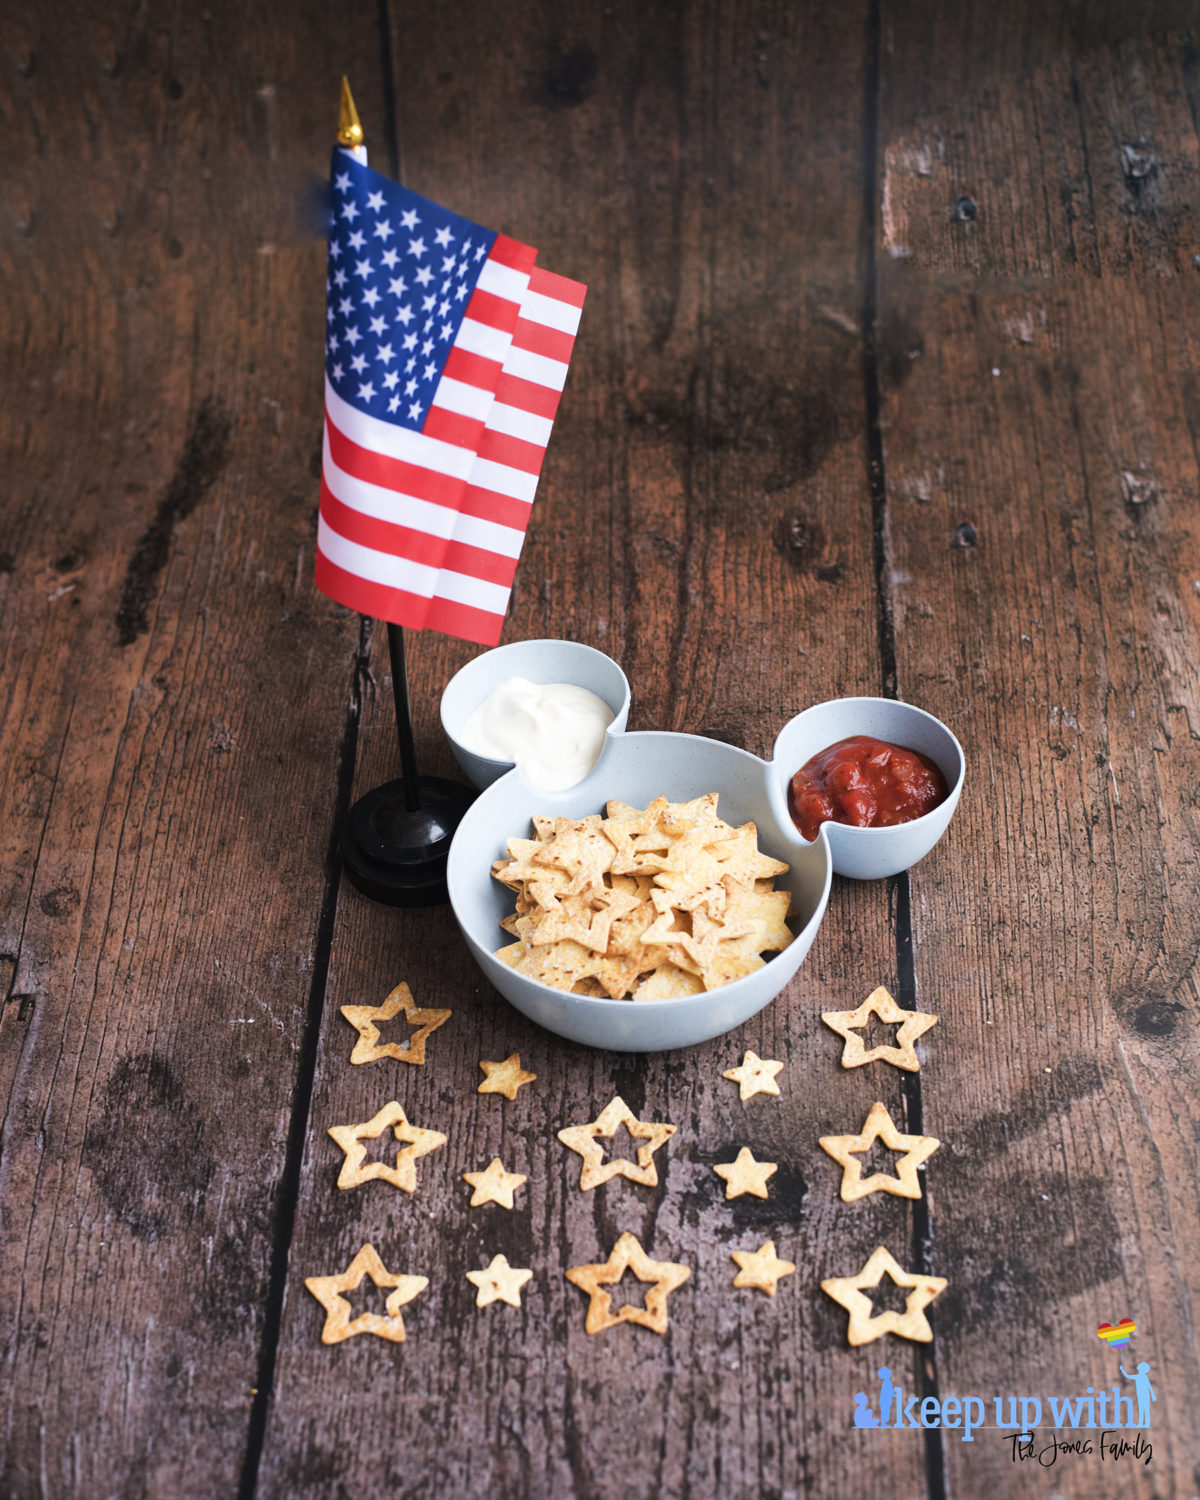 Image shows a blue bowl in the shape of Mickey Mouse suitable for chips and dip. There is an American flag stood close to the bowl and inside the bowl is tomato salsa, soured cream, and star spangled nacho chips. Image by keep up with the jones family.